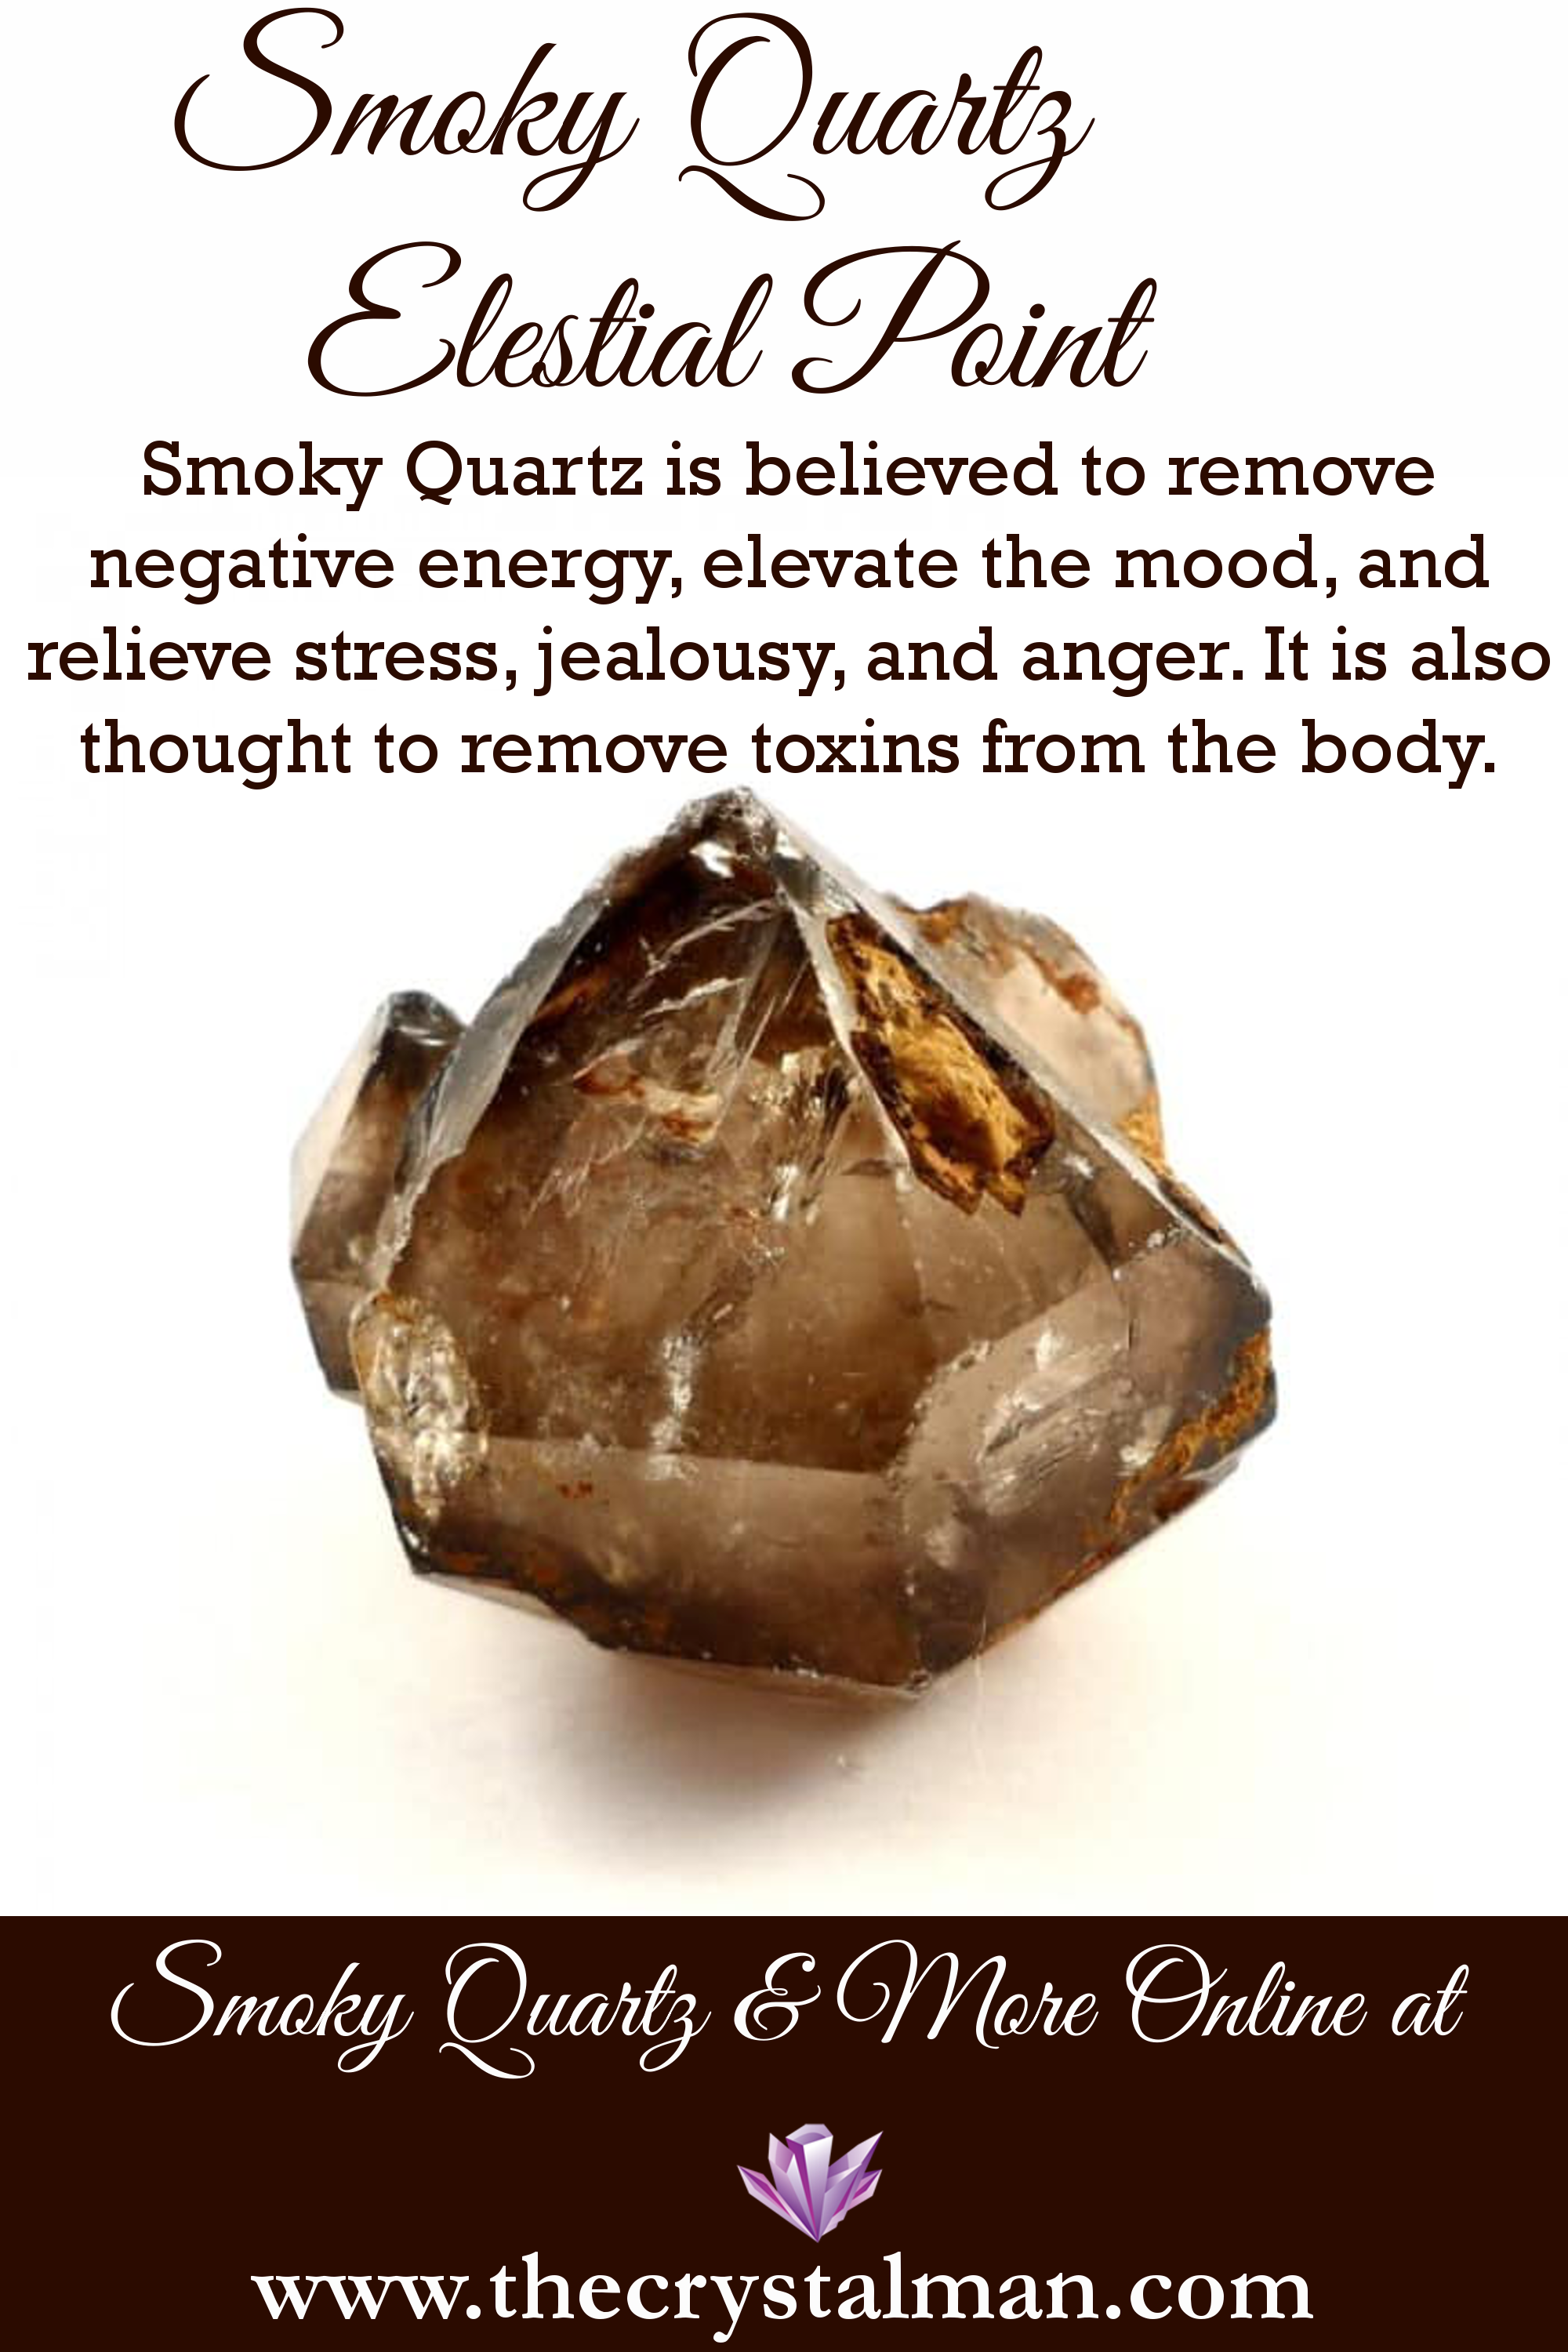 Smoky Quartz ~ Removal of Negative Energy-Elevation of Mood-Stress Release-Toxin Removal-Easing of Jealousy & Anger Shop crystals online any time at The Crystal Man! #smokyquartz